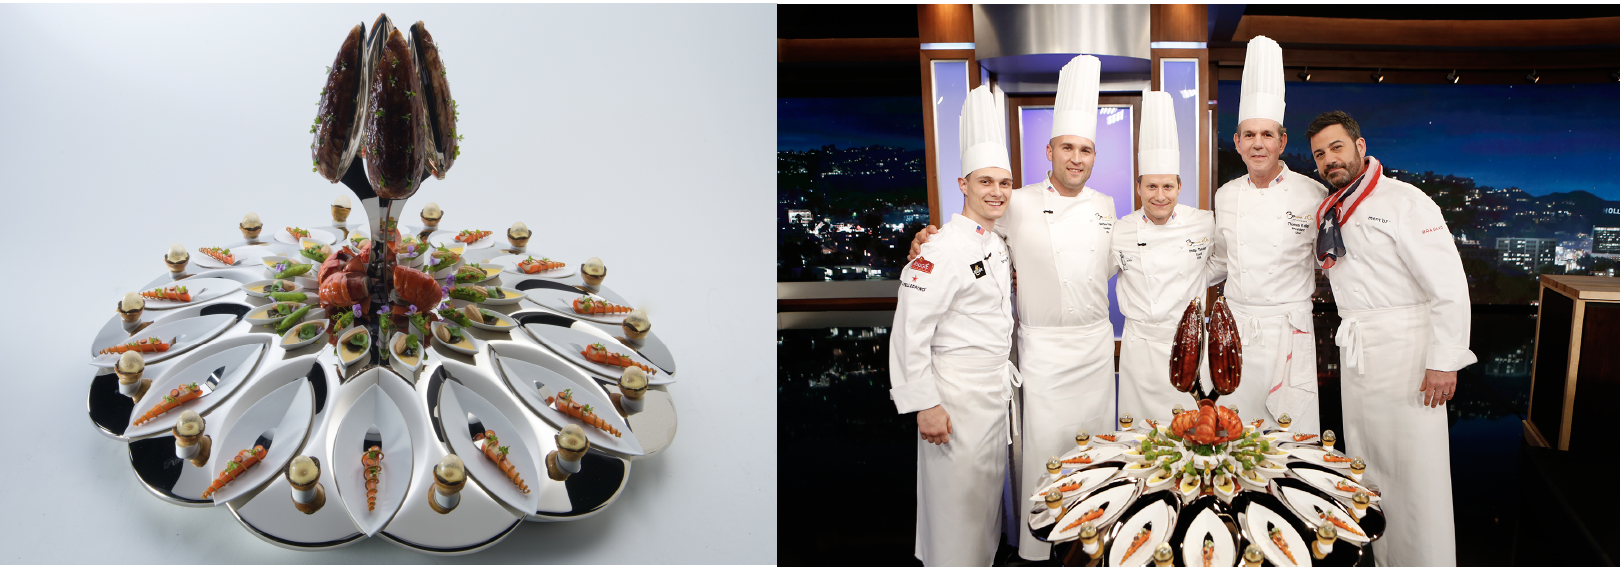 chef-philip-tessier-headers-5.png